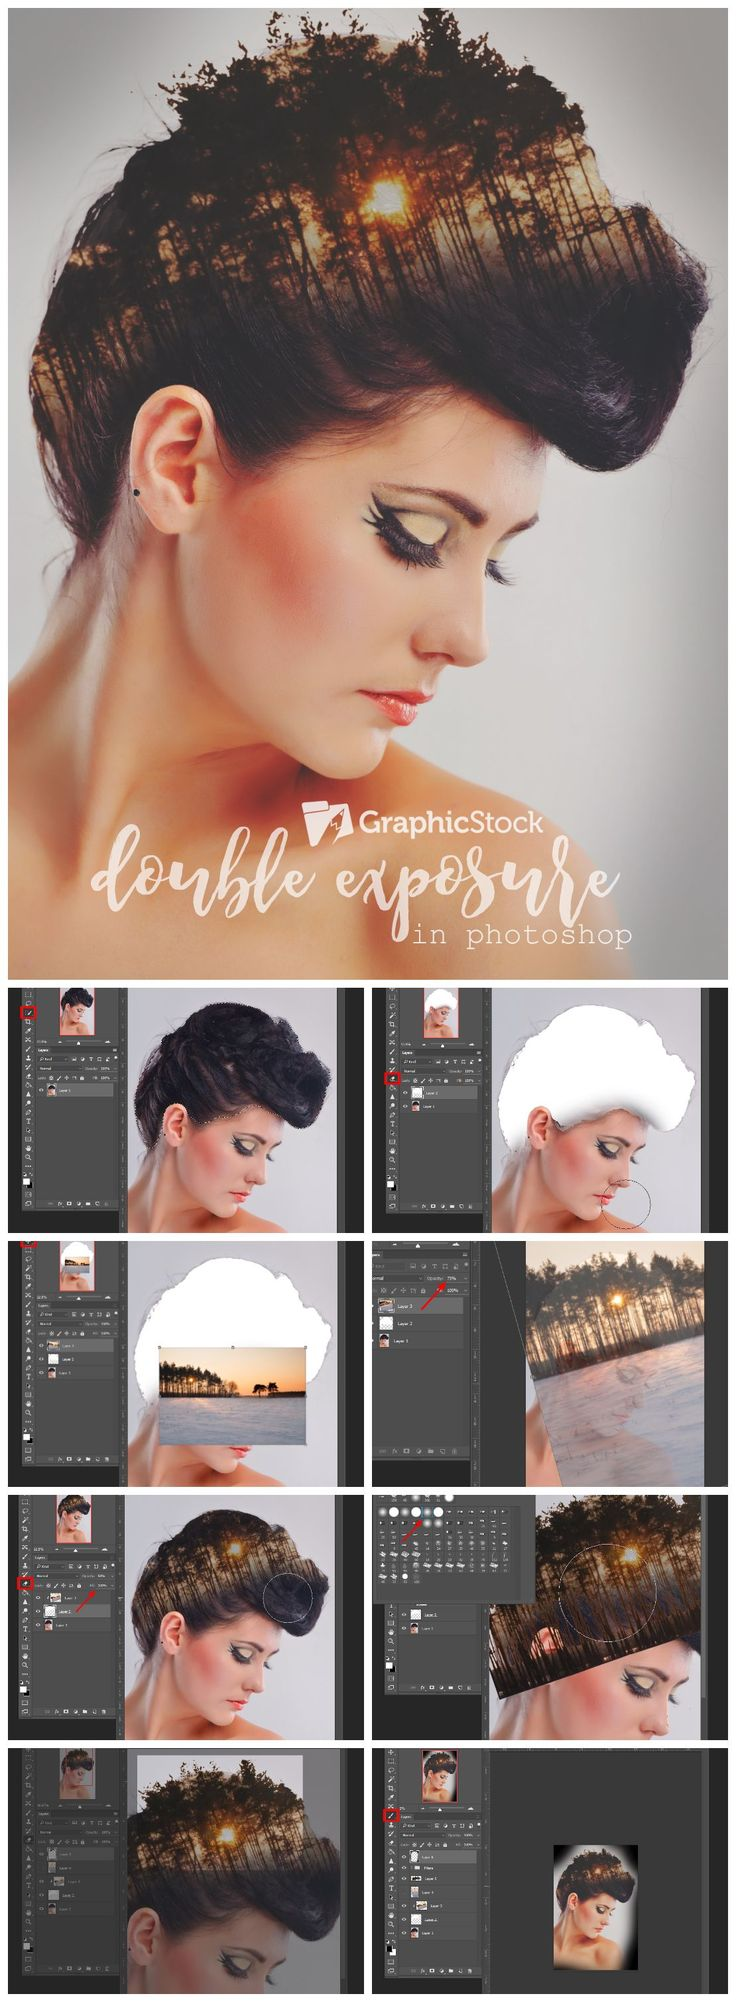 Here's a tutorial on how to do double exposure on Photoshop. Inspire your creativity with our unlimited downloads of high-quality, royalty-free photos, vectors, illustrations & other design elements from GraphicStock.